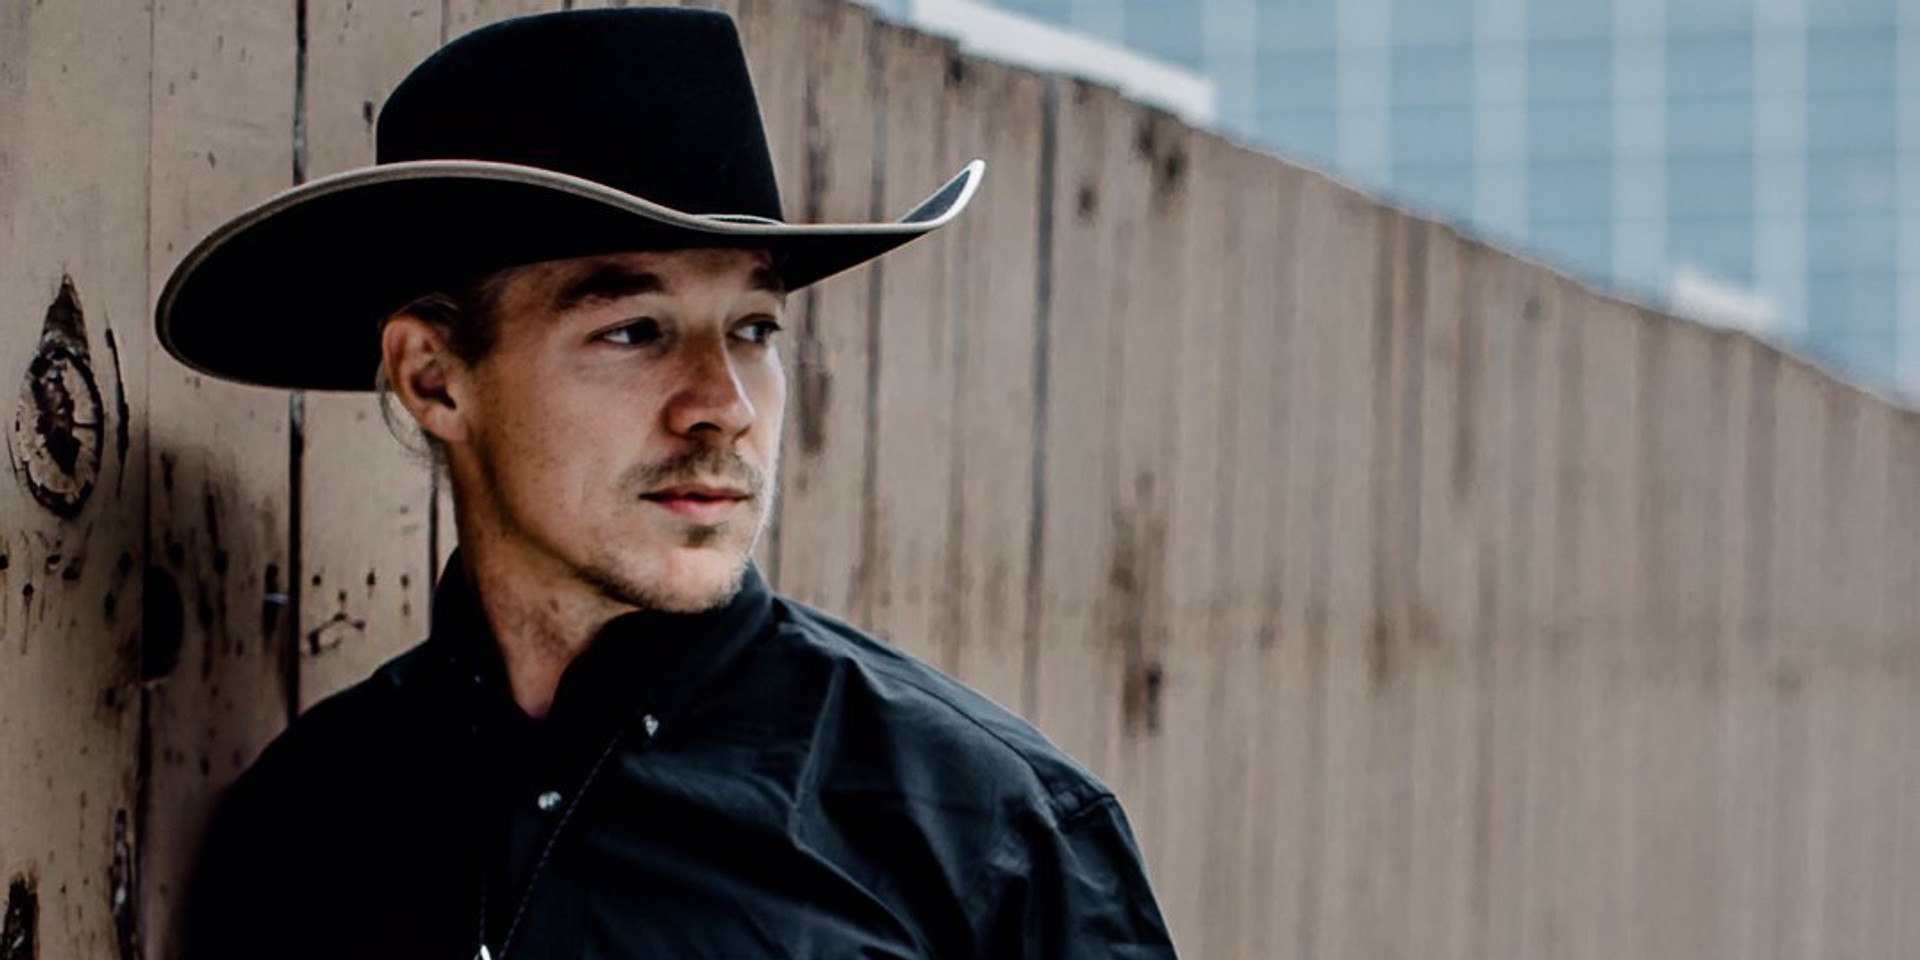 Diplo debuts new Country persona, releases new single, 'So Long' – listen